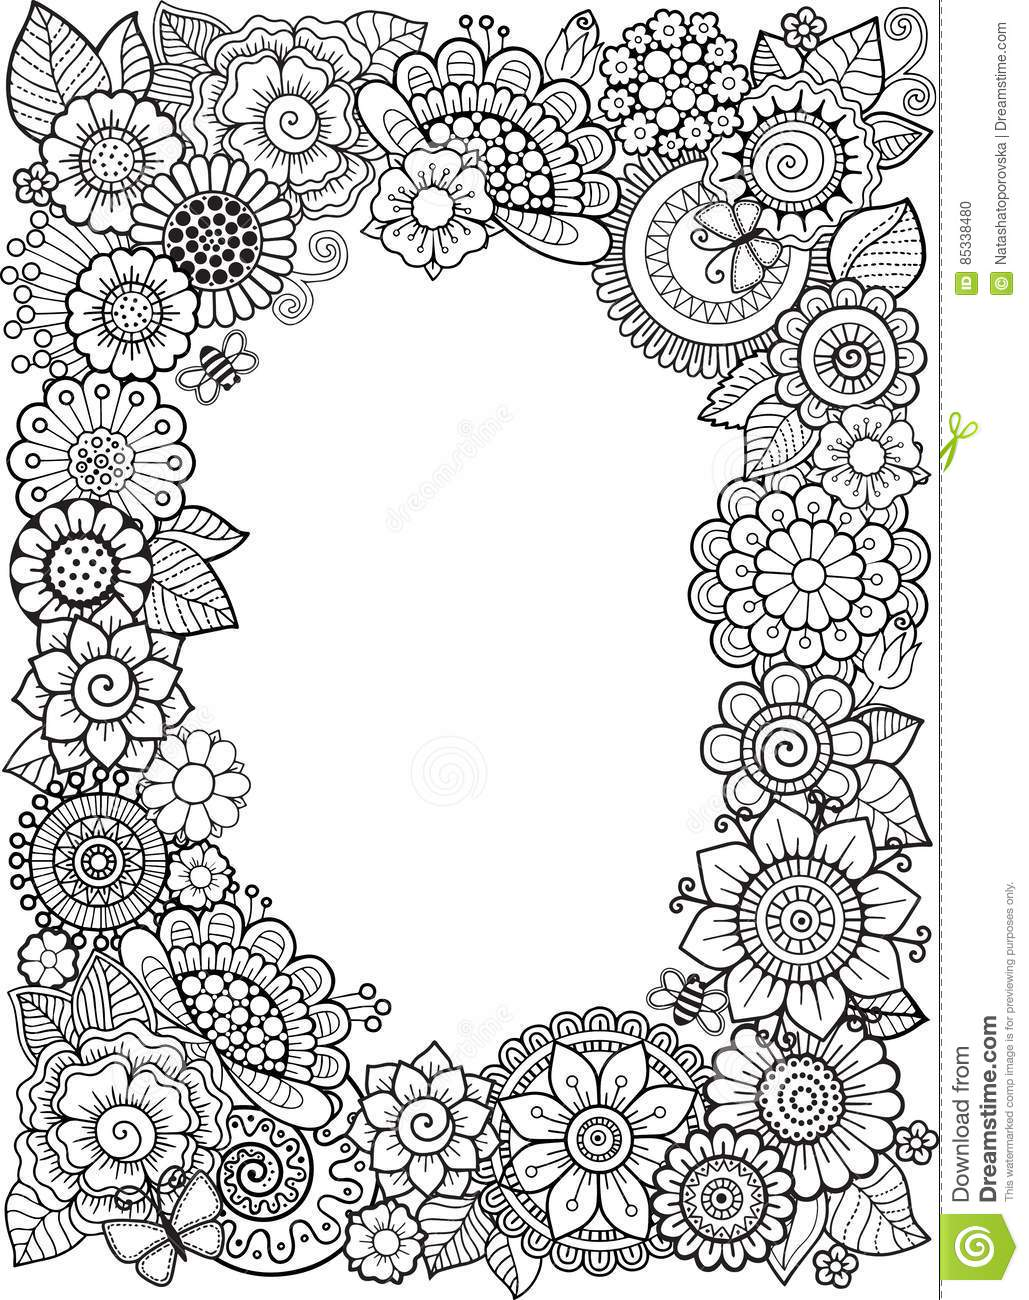 Vector Coloring book anti-stress for adults. Doodle elements. Decorative floral frame.